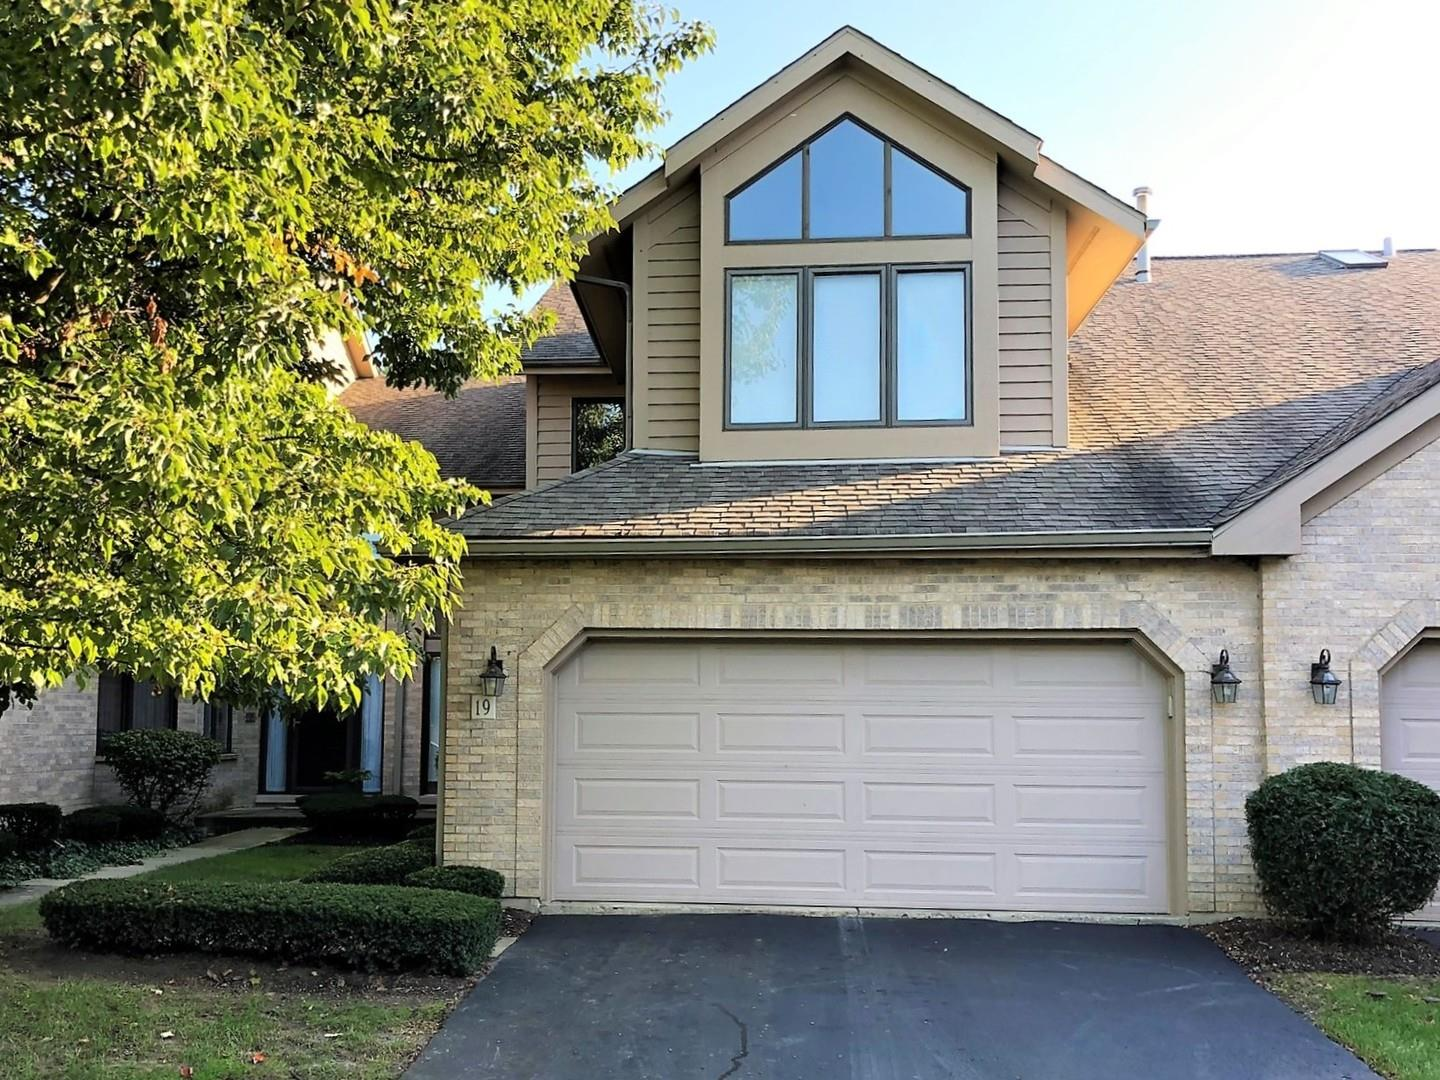 19 LAKE KATHERINE Way, Palos Heights, IL 60463 - #: 10543576